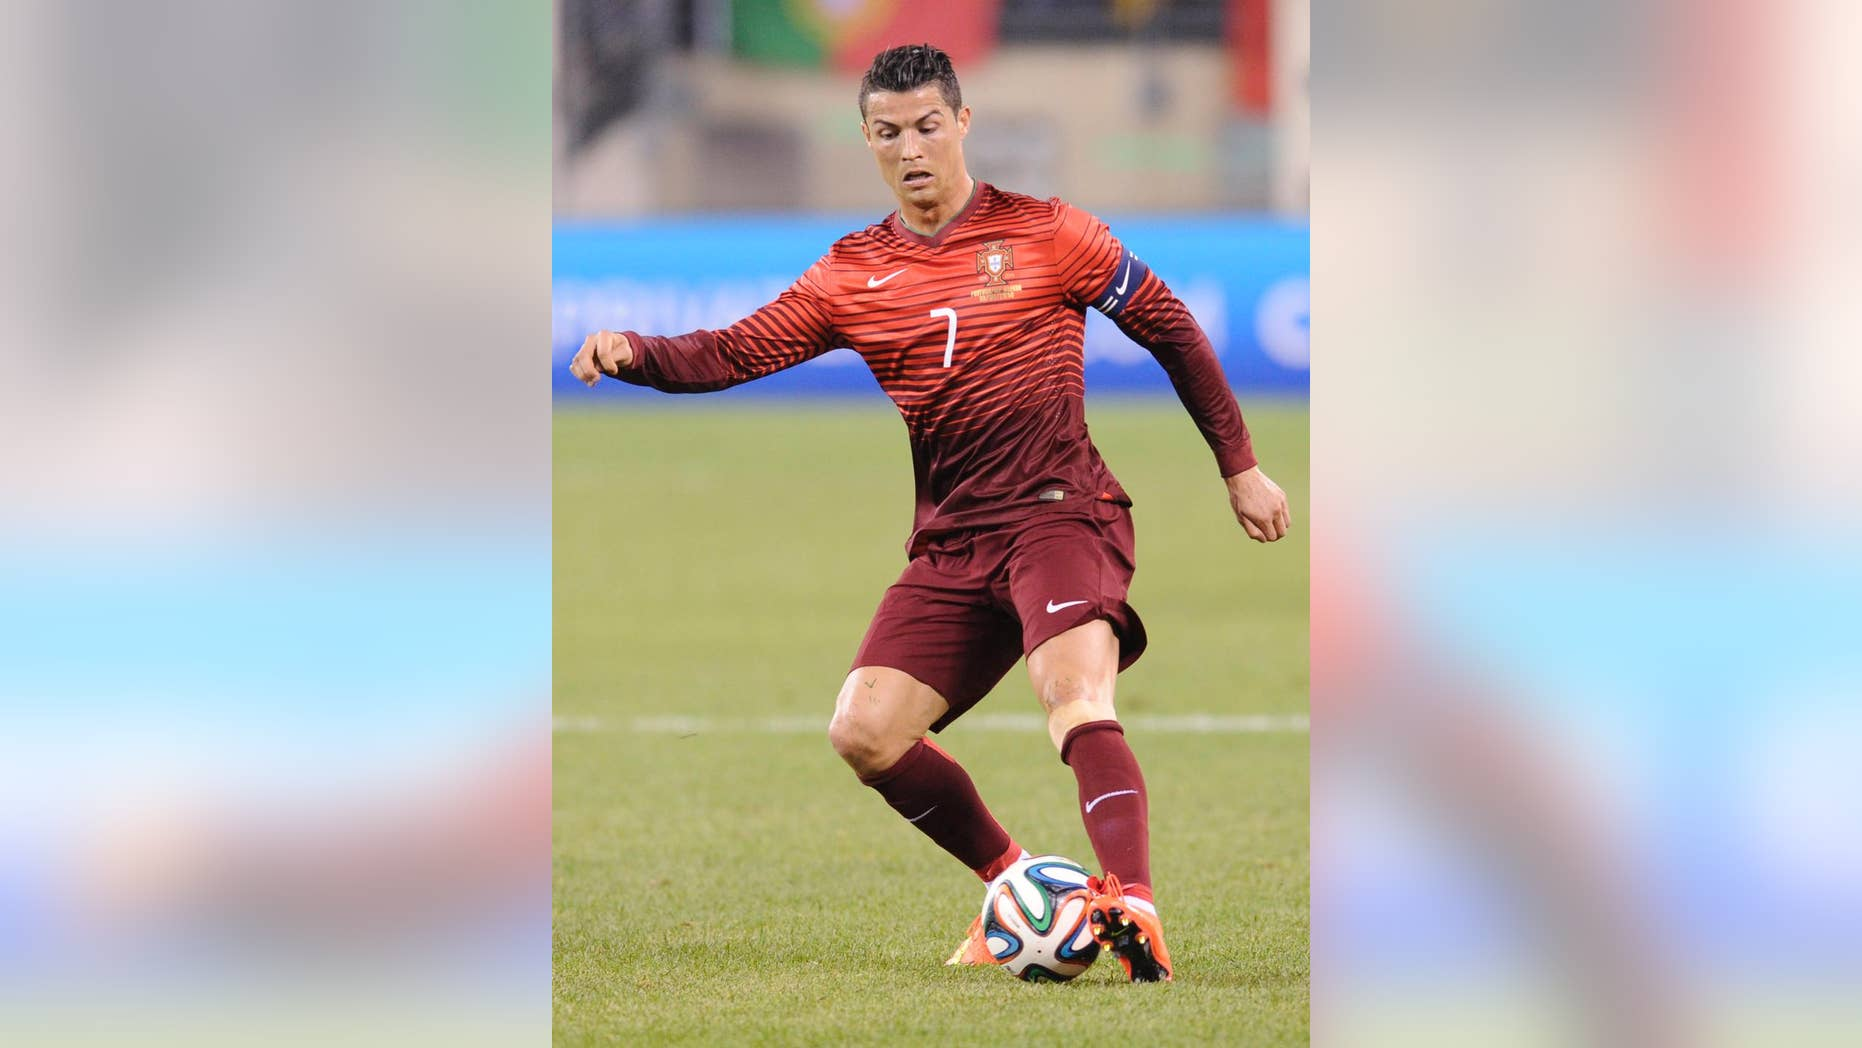 Portugal's Cristiano Ronaldo controls the ball during the second half of an international friendly soccer match against the Republic of Ireland Tuesday, June 10, 2014, in East Rutherford, N.J. Portugal won 5-1. (AP Photo/Bill Kostroun)